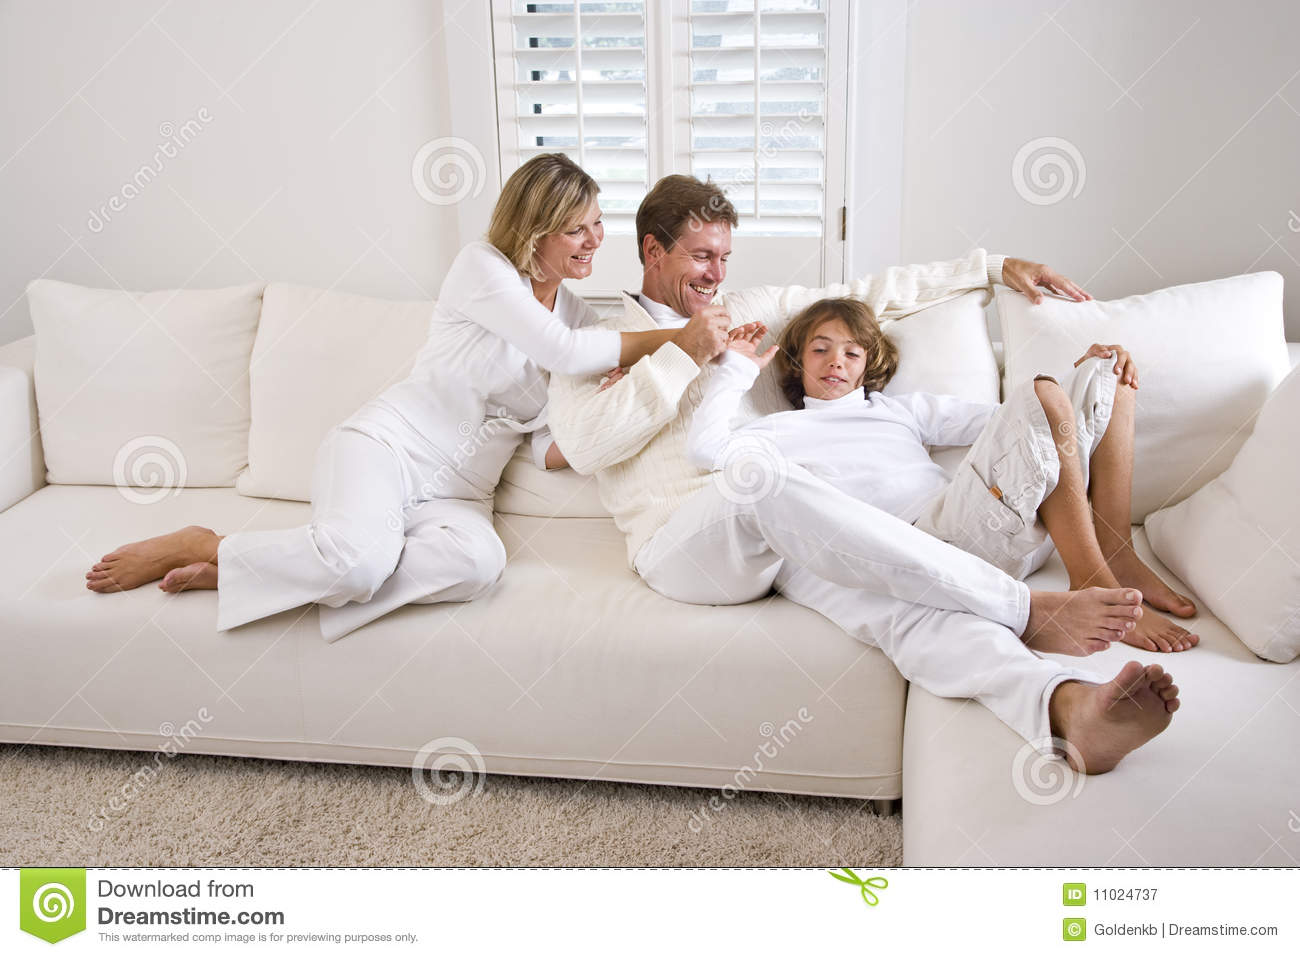 family relaxing at home on white living room sofa stock image image 11024737. Black Bedroom Furniture Sets. Home Design Ideas